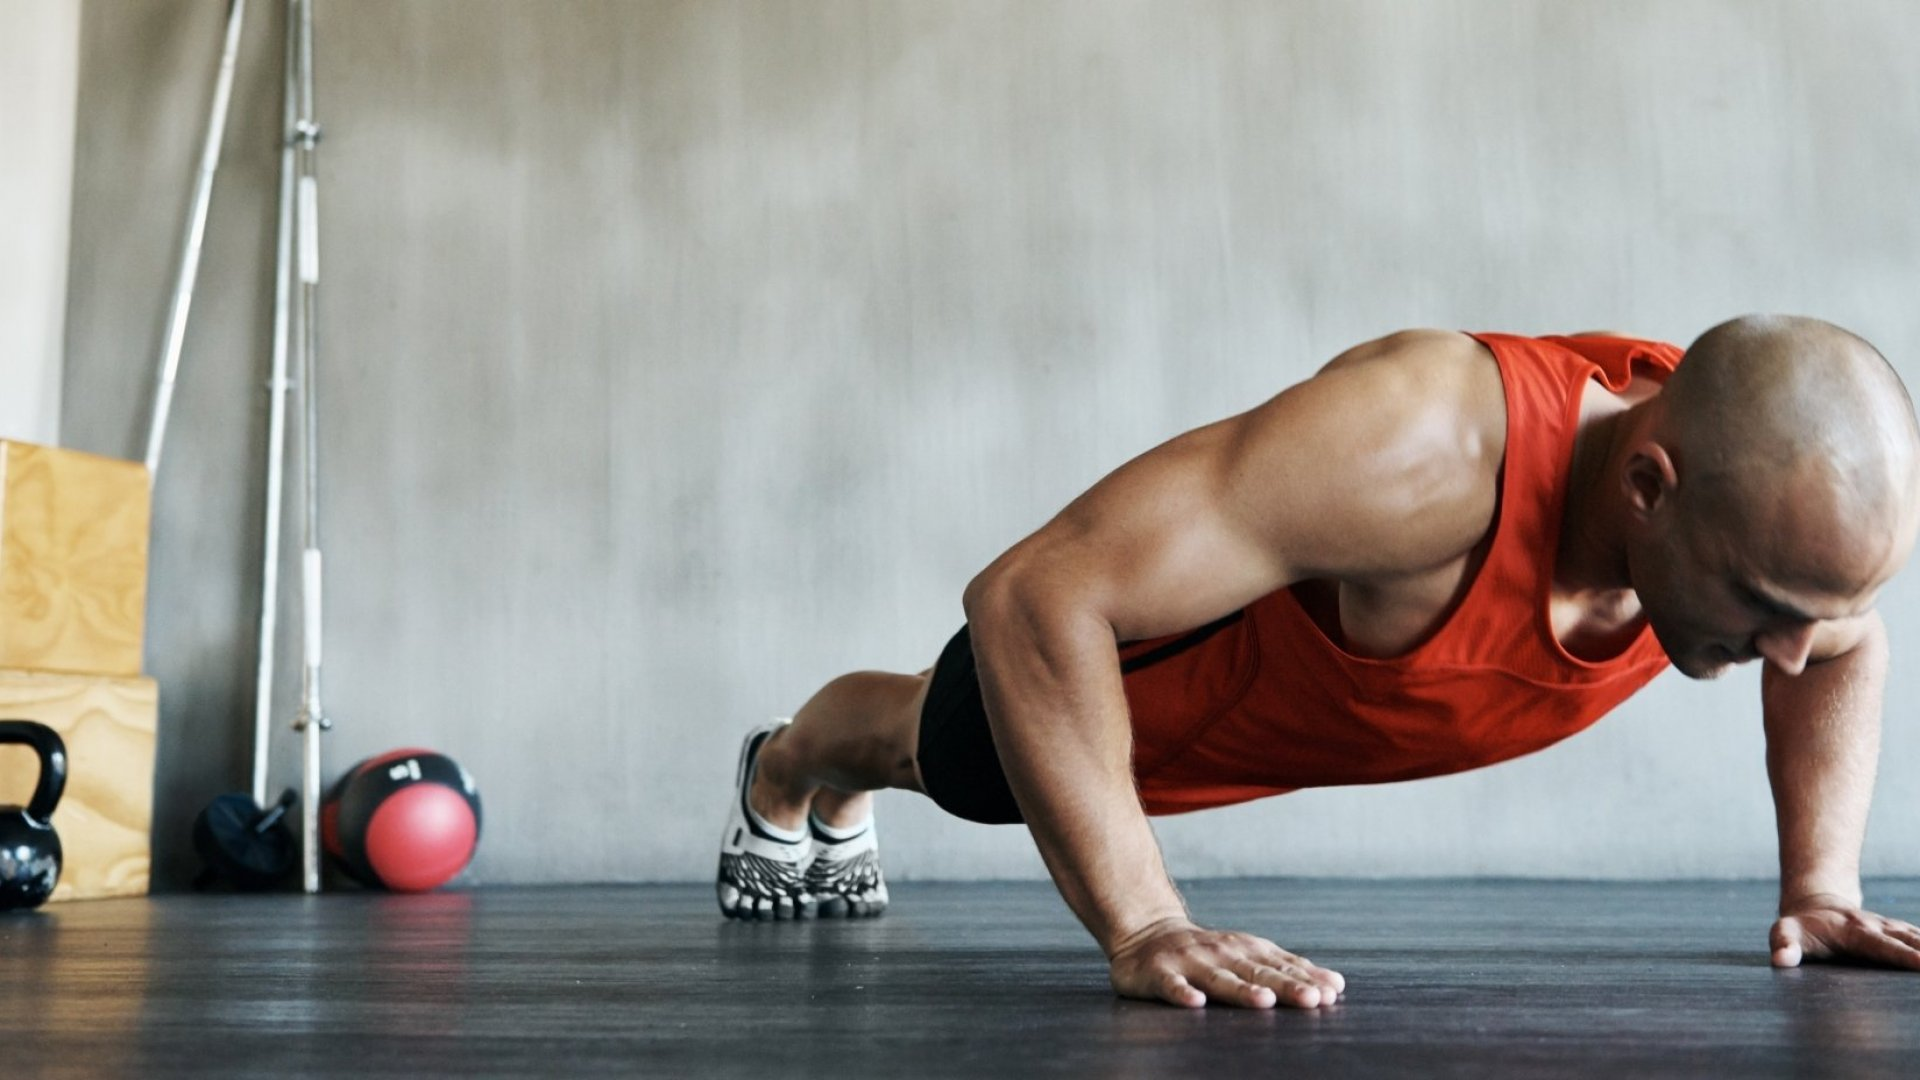 Here's What Happened When I Did 100,000 Pushups and 50,000 Sit-Ups